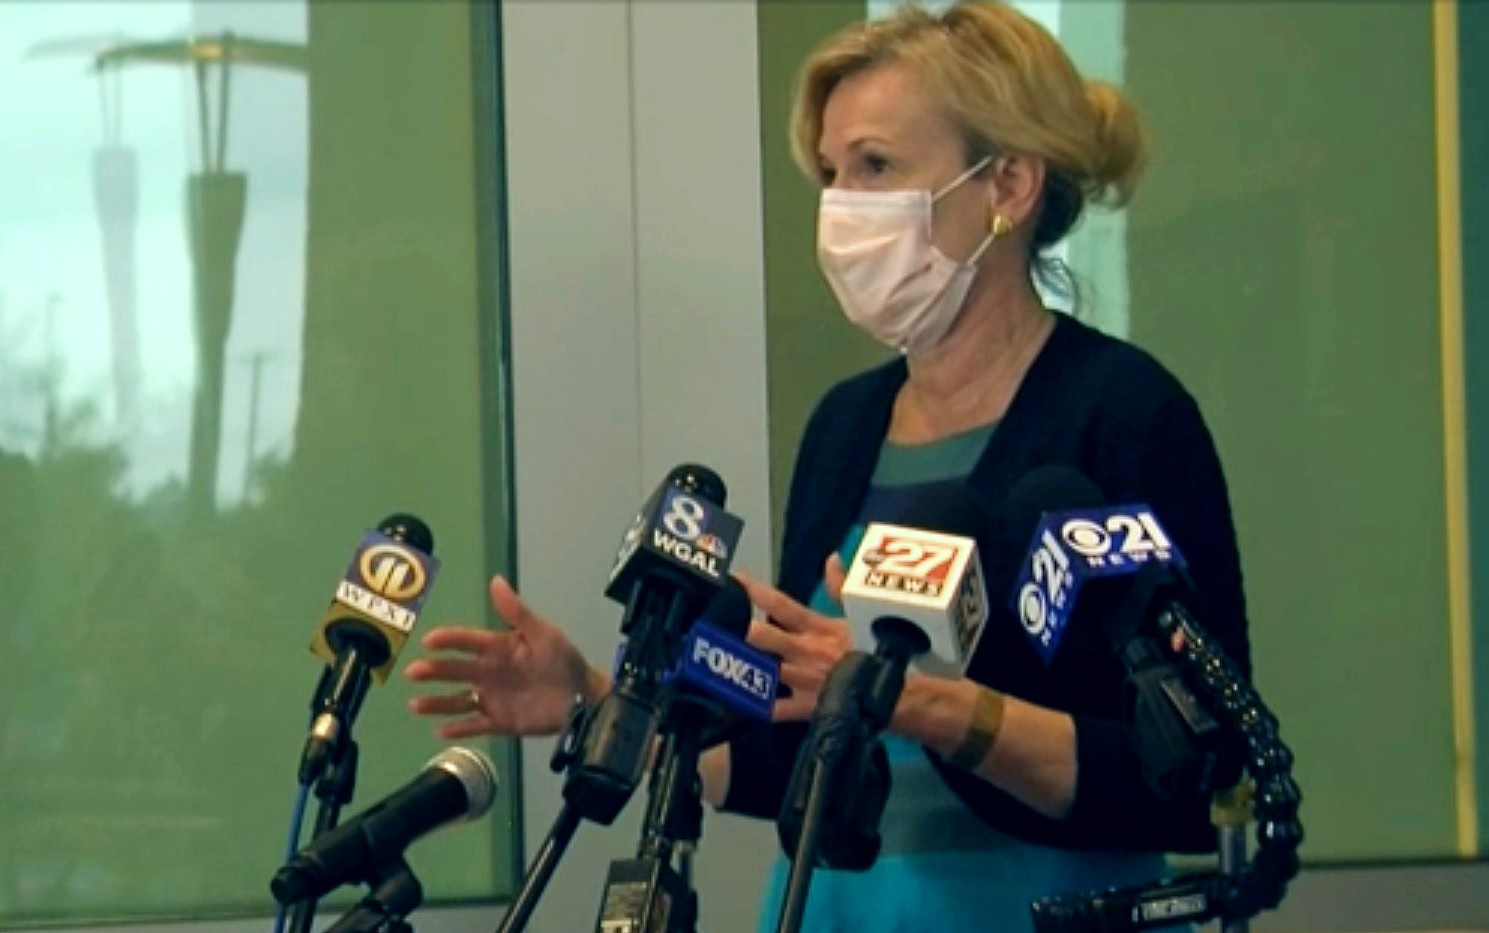 Dr. Deborah Birx speaks to the media in this image taken from online video on Thursday, Sept. 3, 2020.